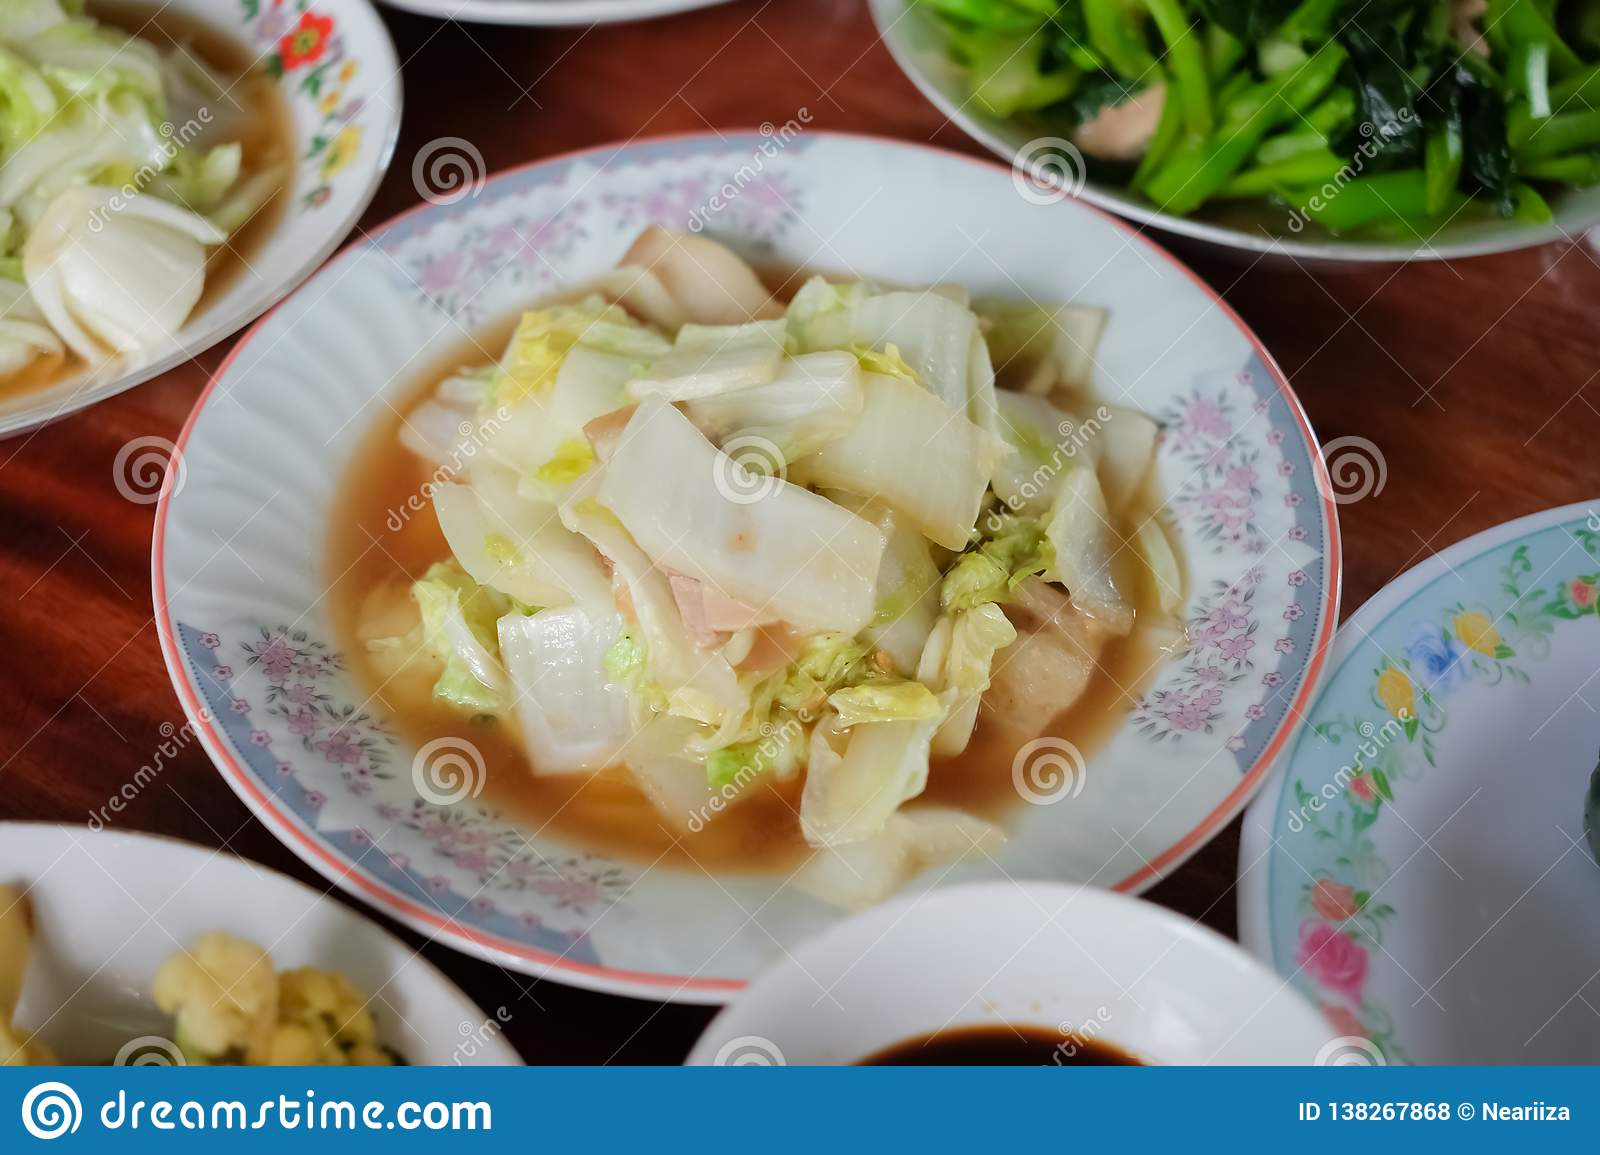 Stir Fry Cabbage with Oyster Sauce Recipe on a plate for Chinese new year, Chinese Ghost Festival